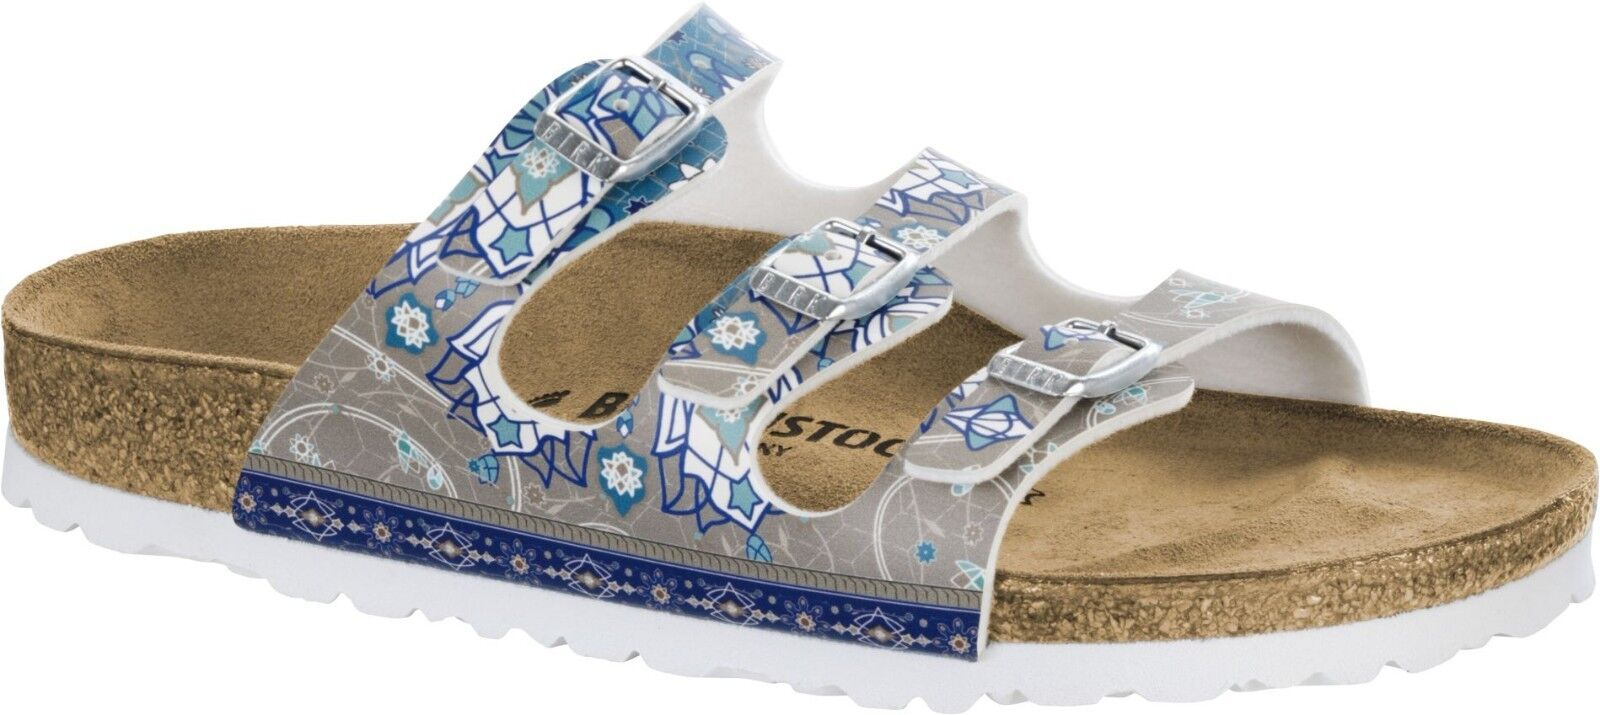 Birkenstock Florida Ancient schmal Mosaic Taupe Sandale 35-42 Fußbett schmal Ancient & normal 6d2fdc